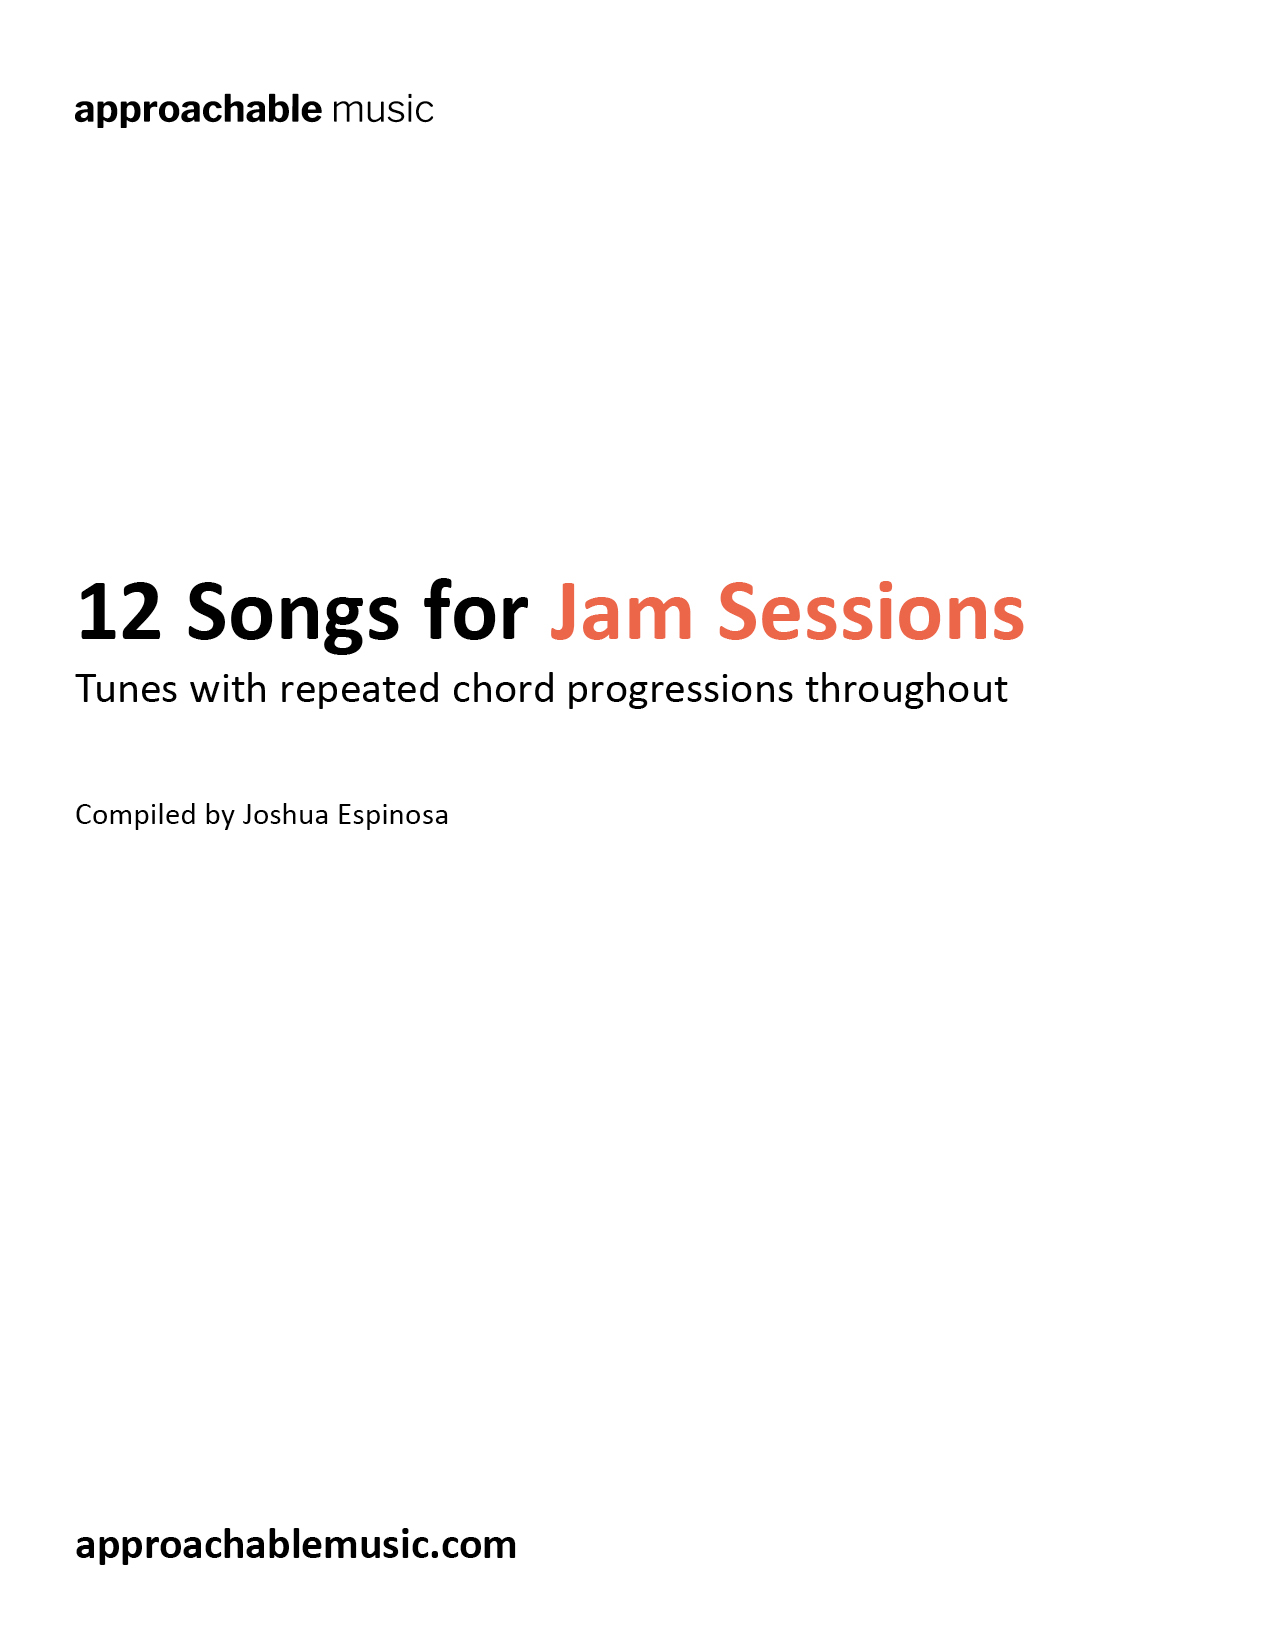 Songs with repeating chord progressions for jam sessions